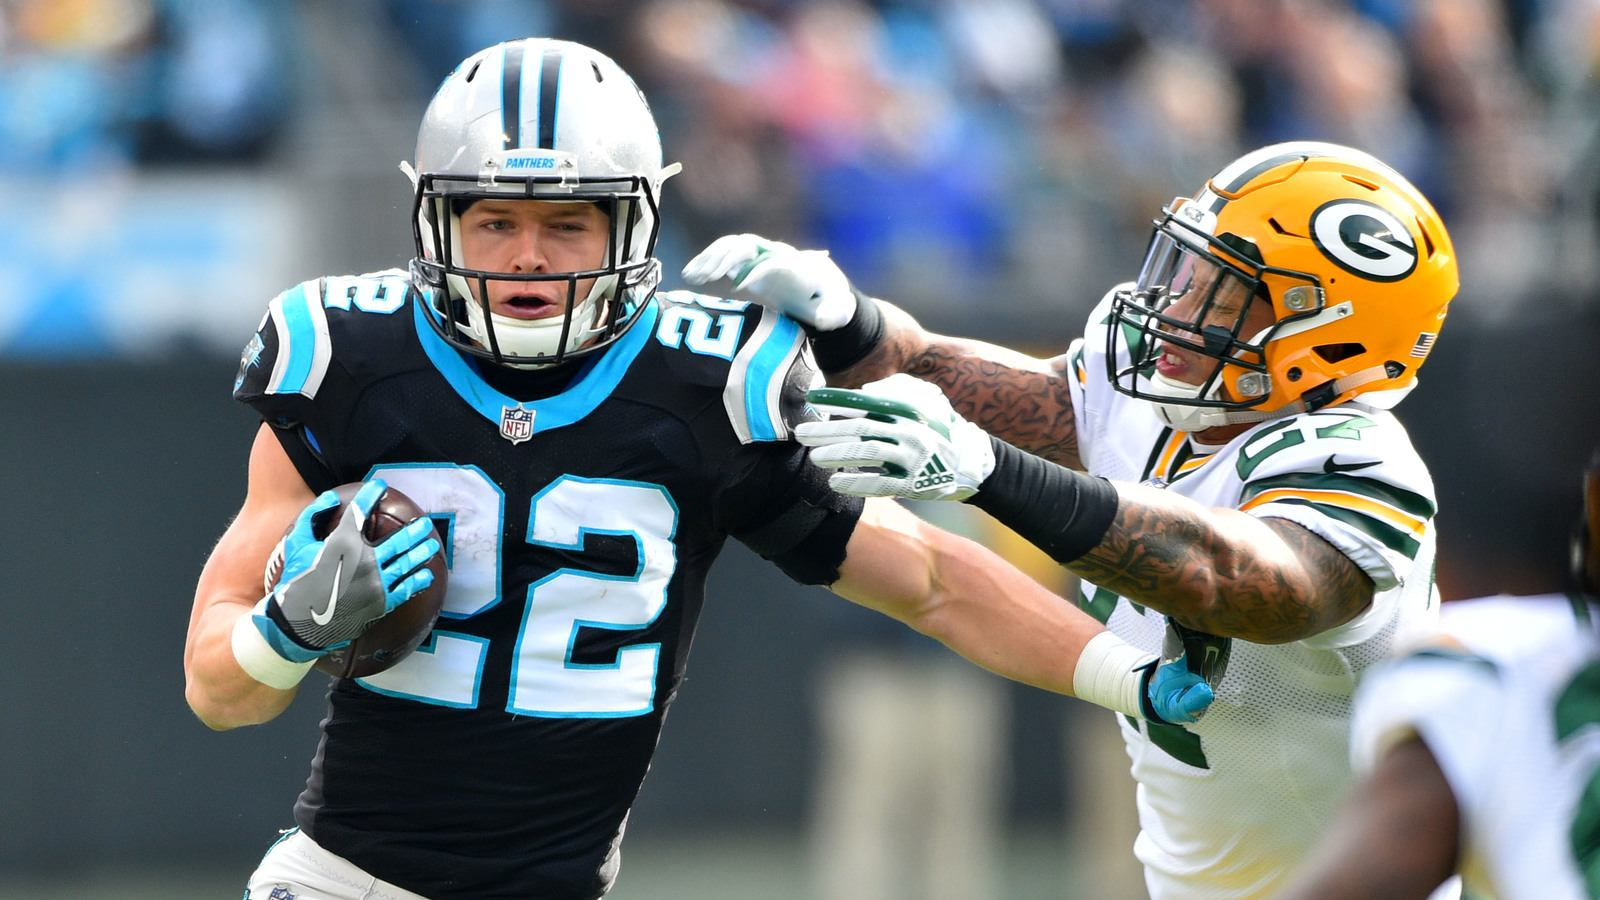 Kevin-brady_game-notes_film-review-rb-christian-mccaffrey-presents-long-list-of-problems-for-cowboys-defense